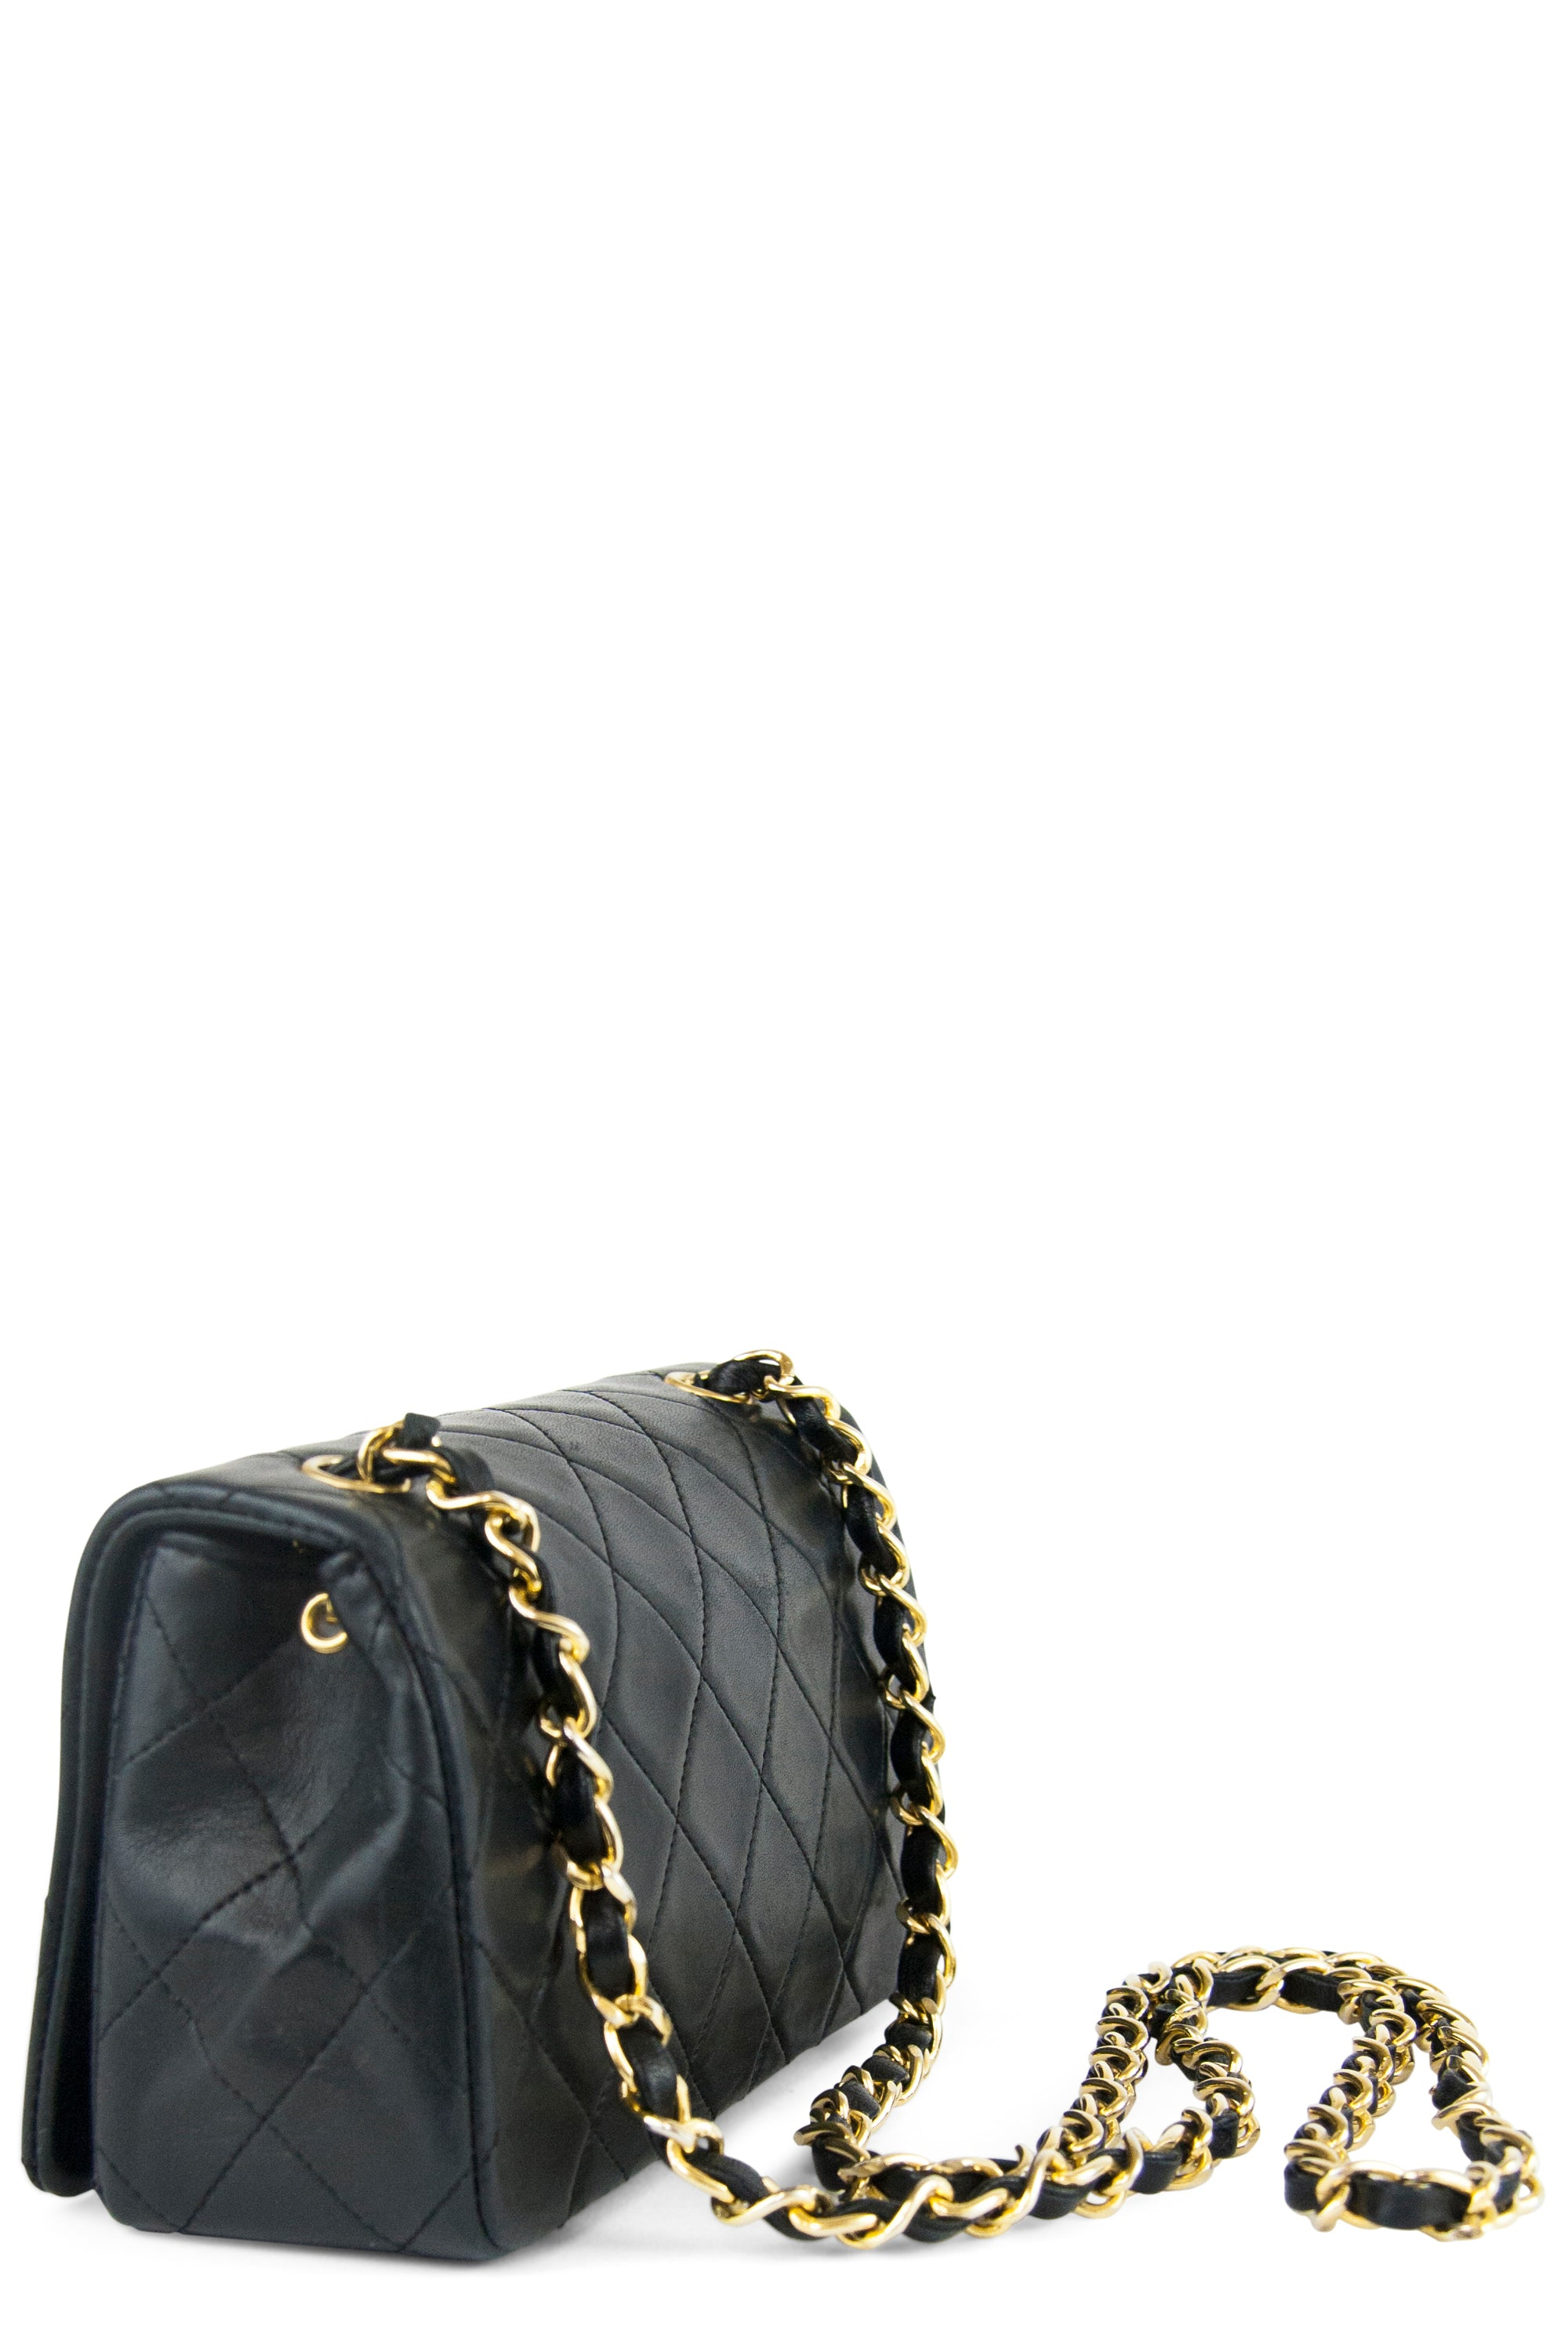 CHANEL Crossbody Tasche